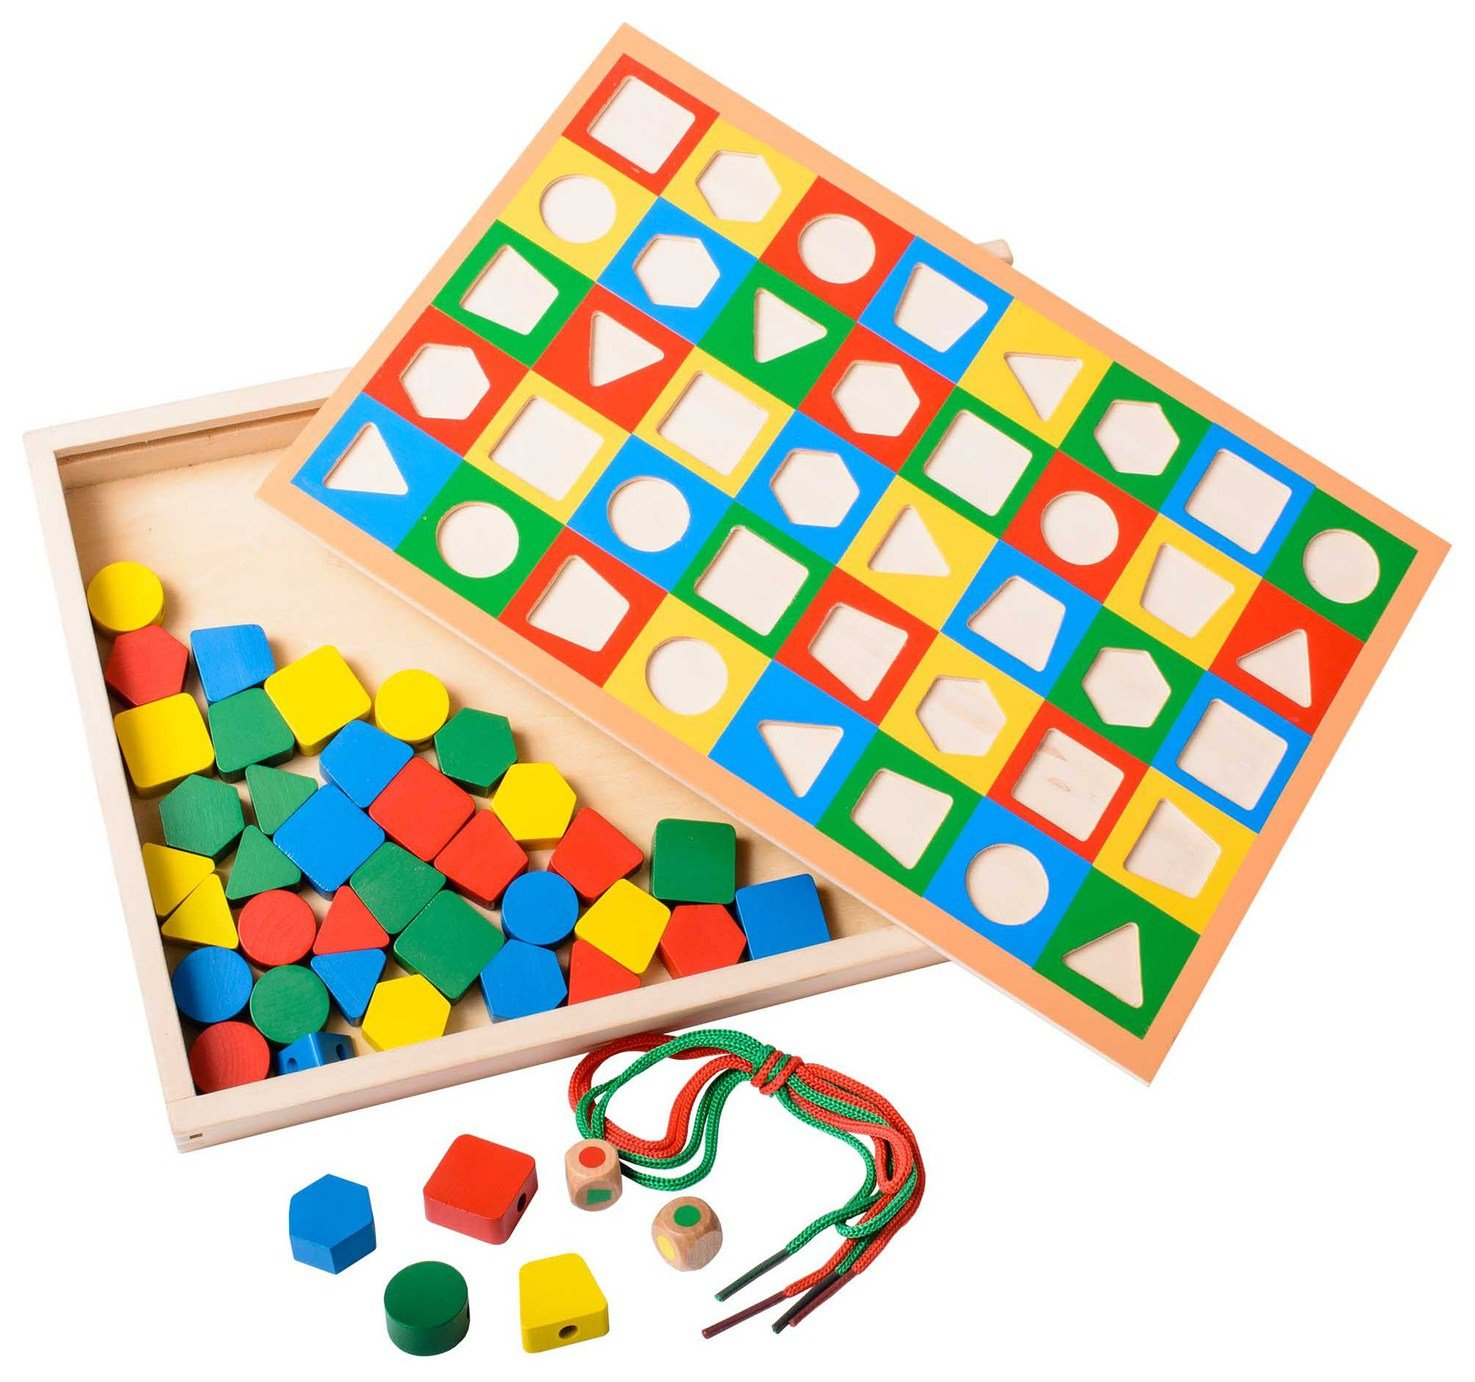 Image of EDUK8 Wooden Toy Lace and Place Set